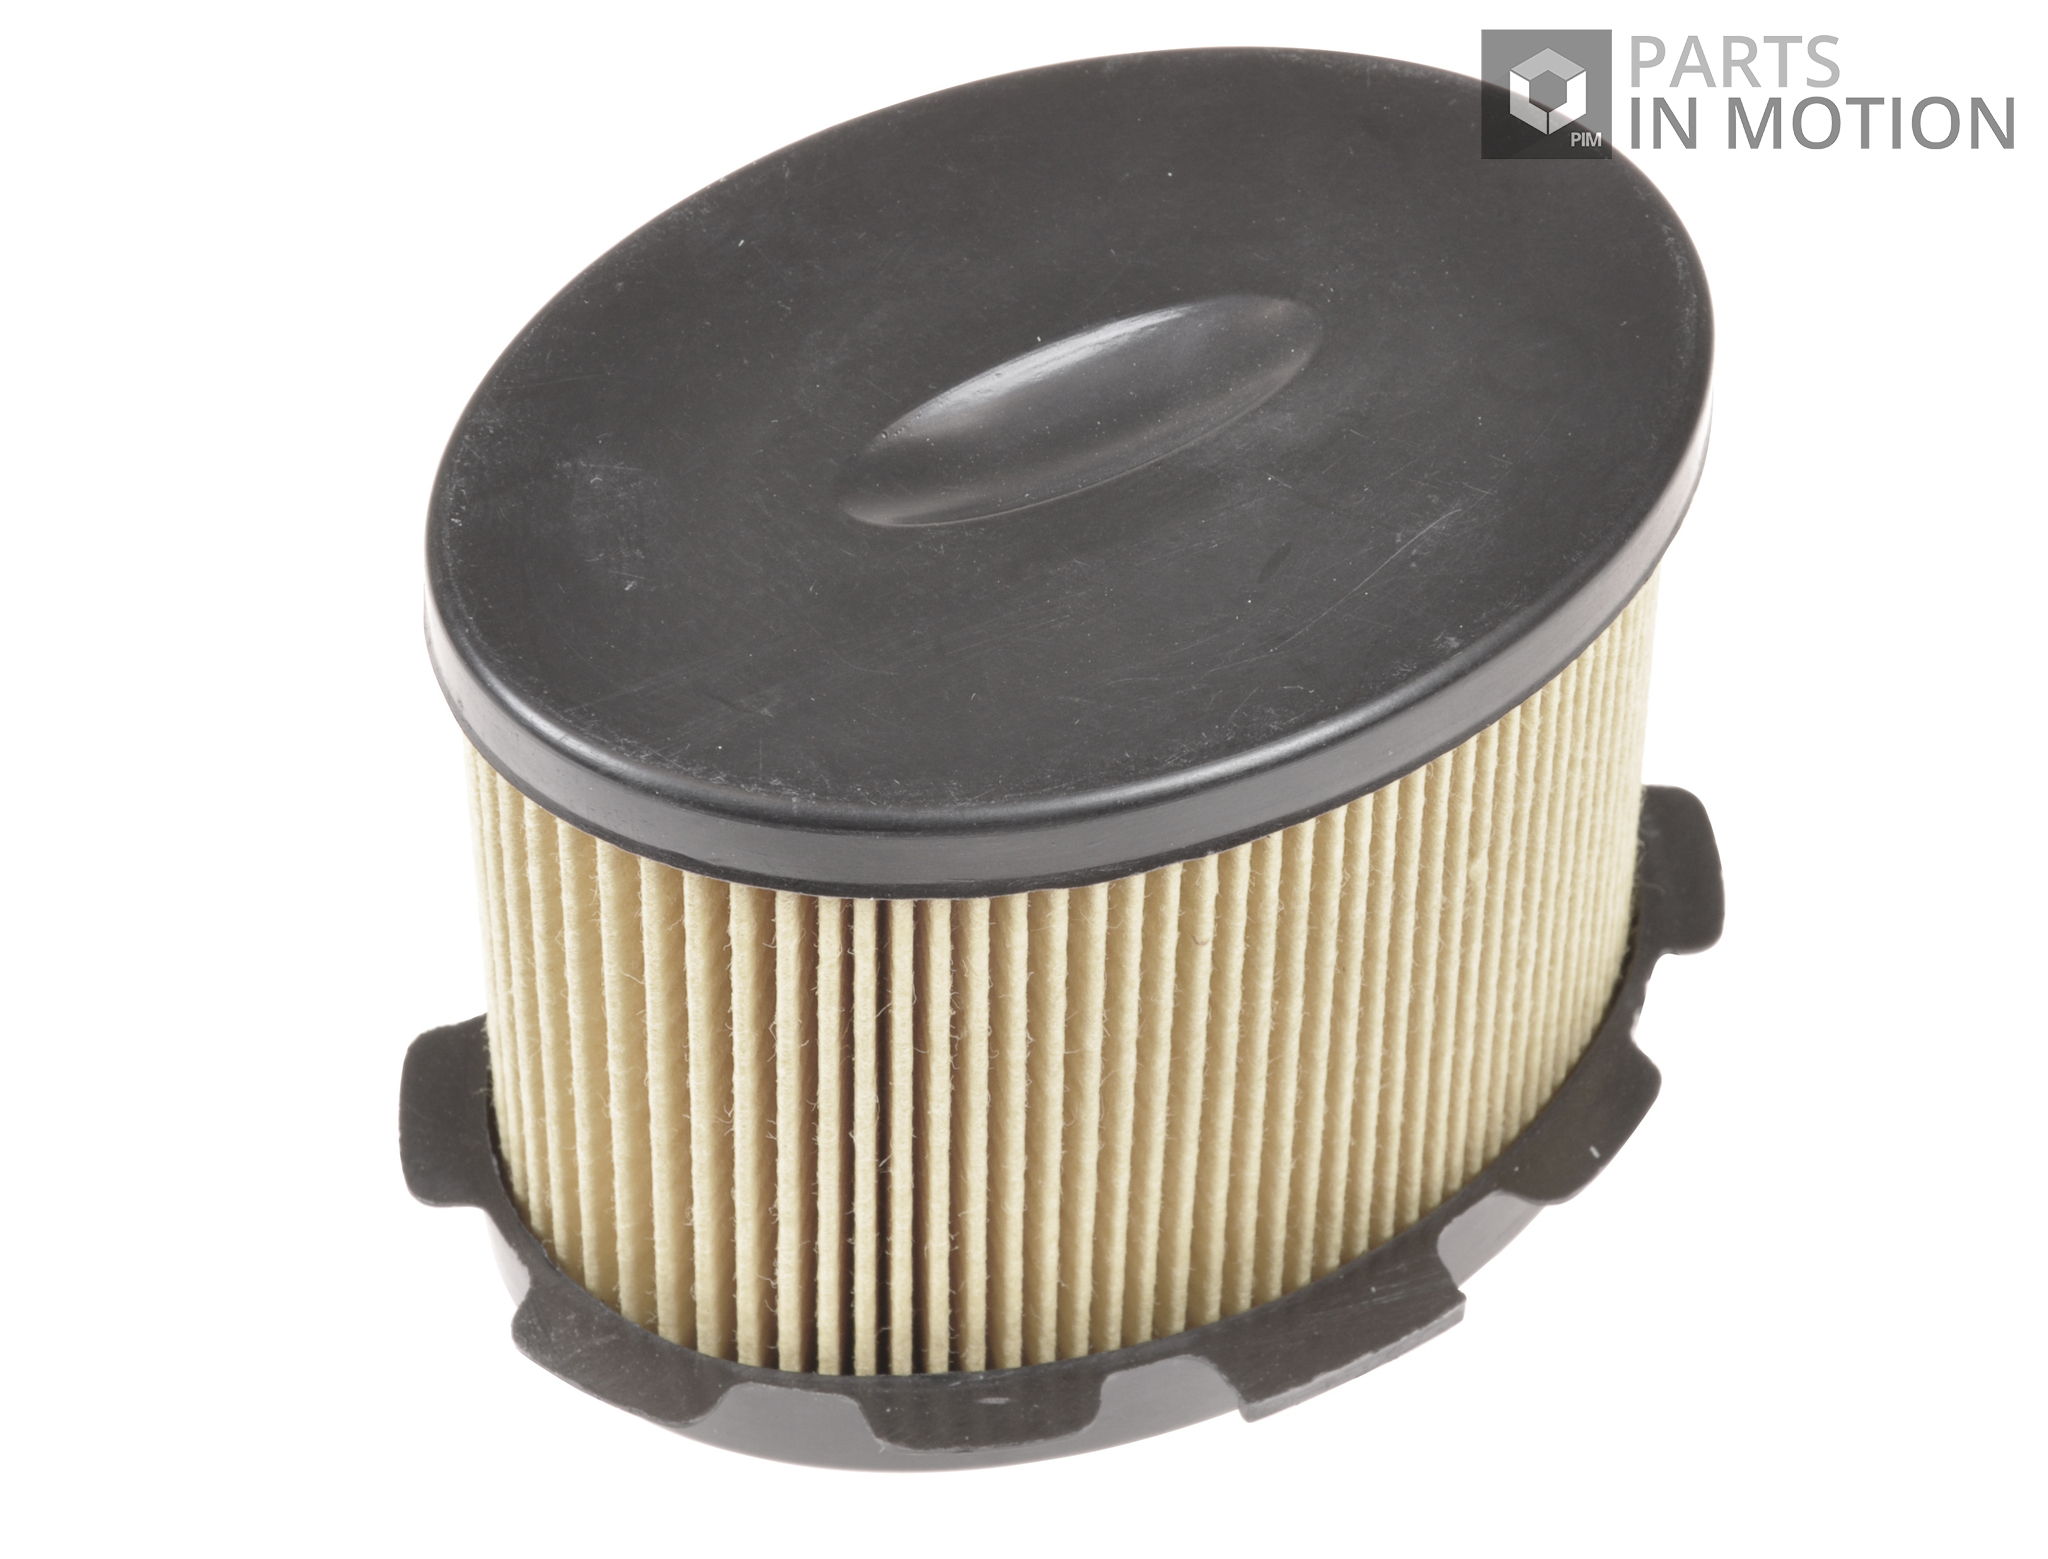 Fuel Filter Fits Toyota Corolla E11 19d 00 To 02 1wz Adl Su00100468 Location 1 9d